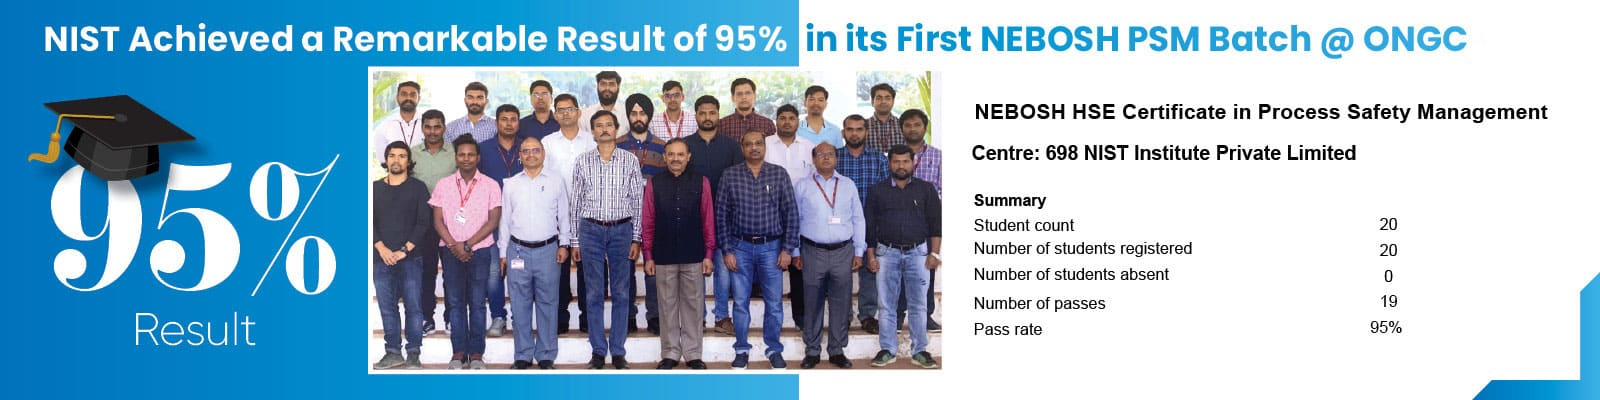 nist-achieved-result-95-nebosh-psm-ongc